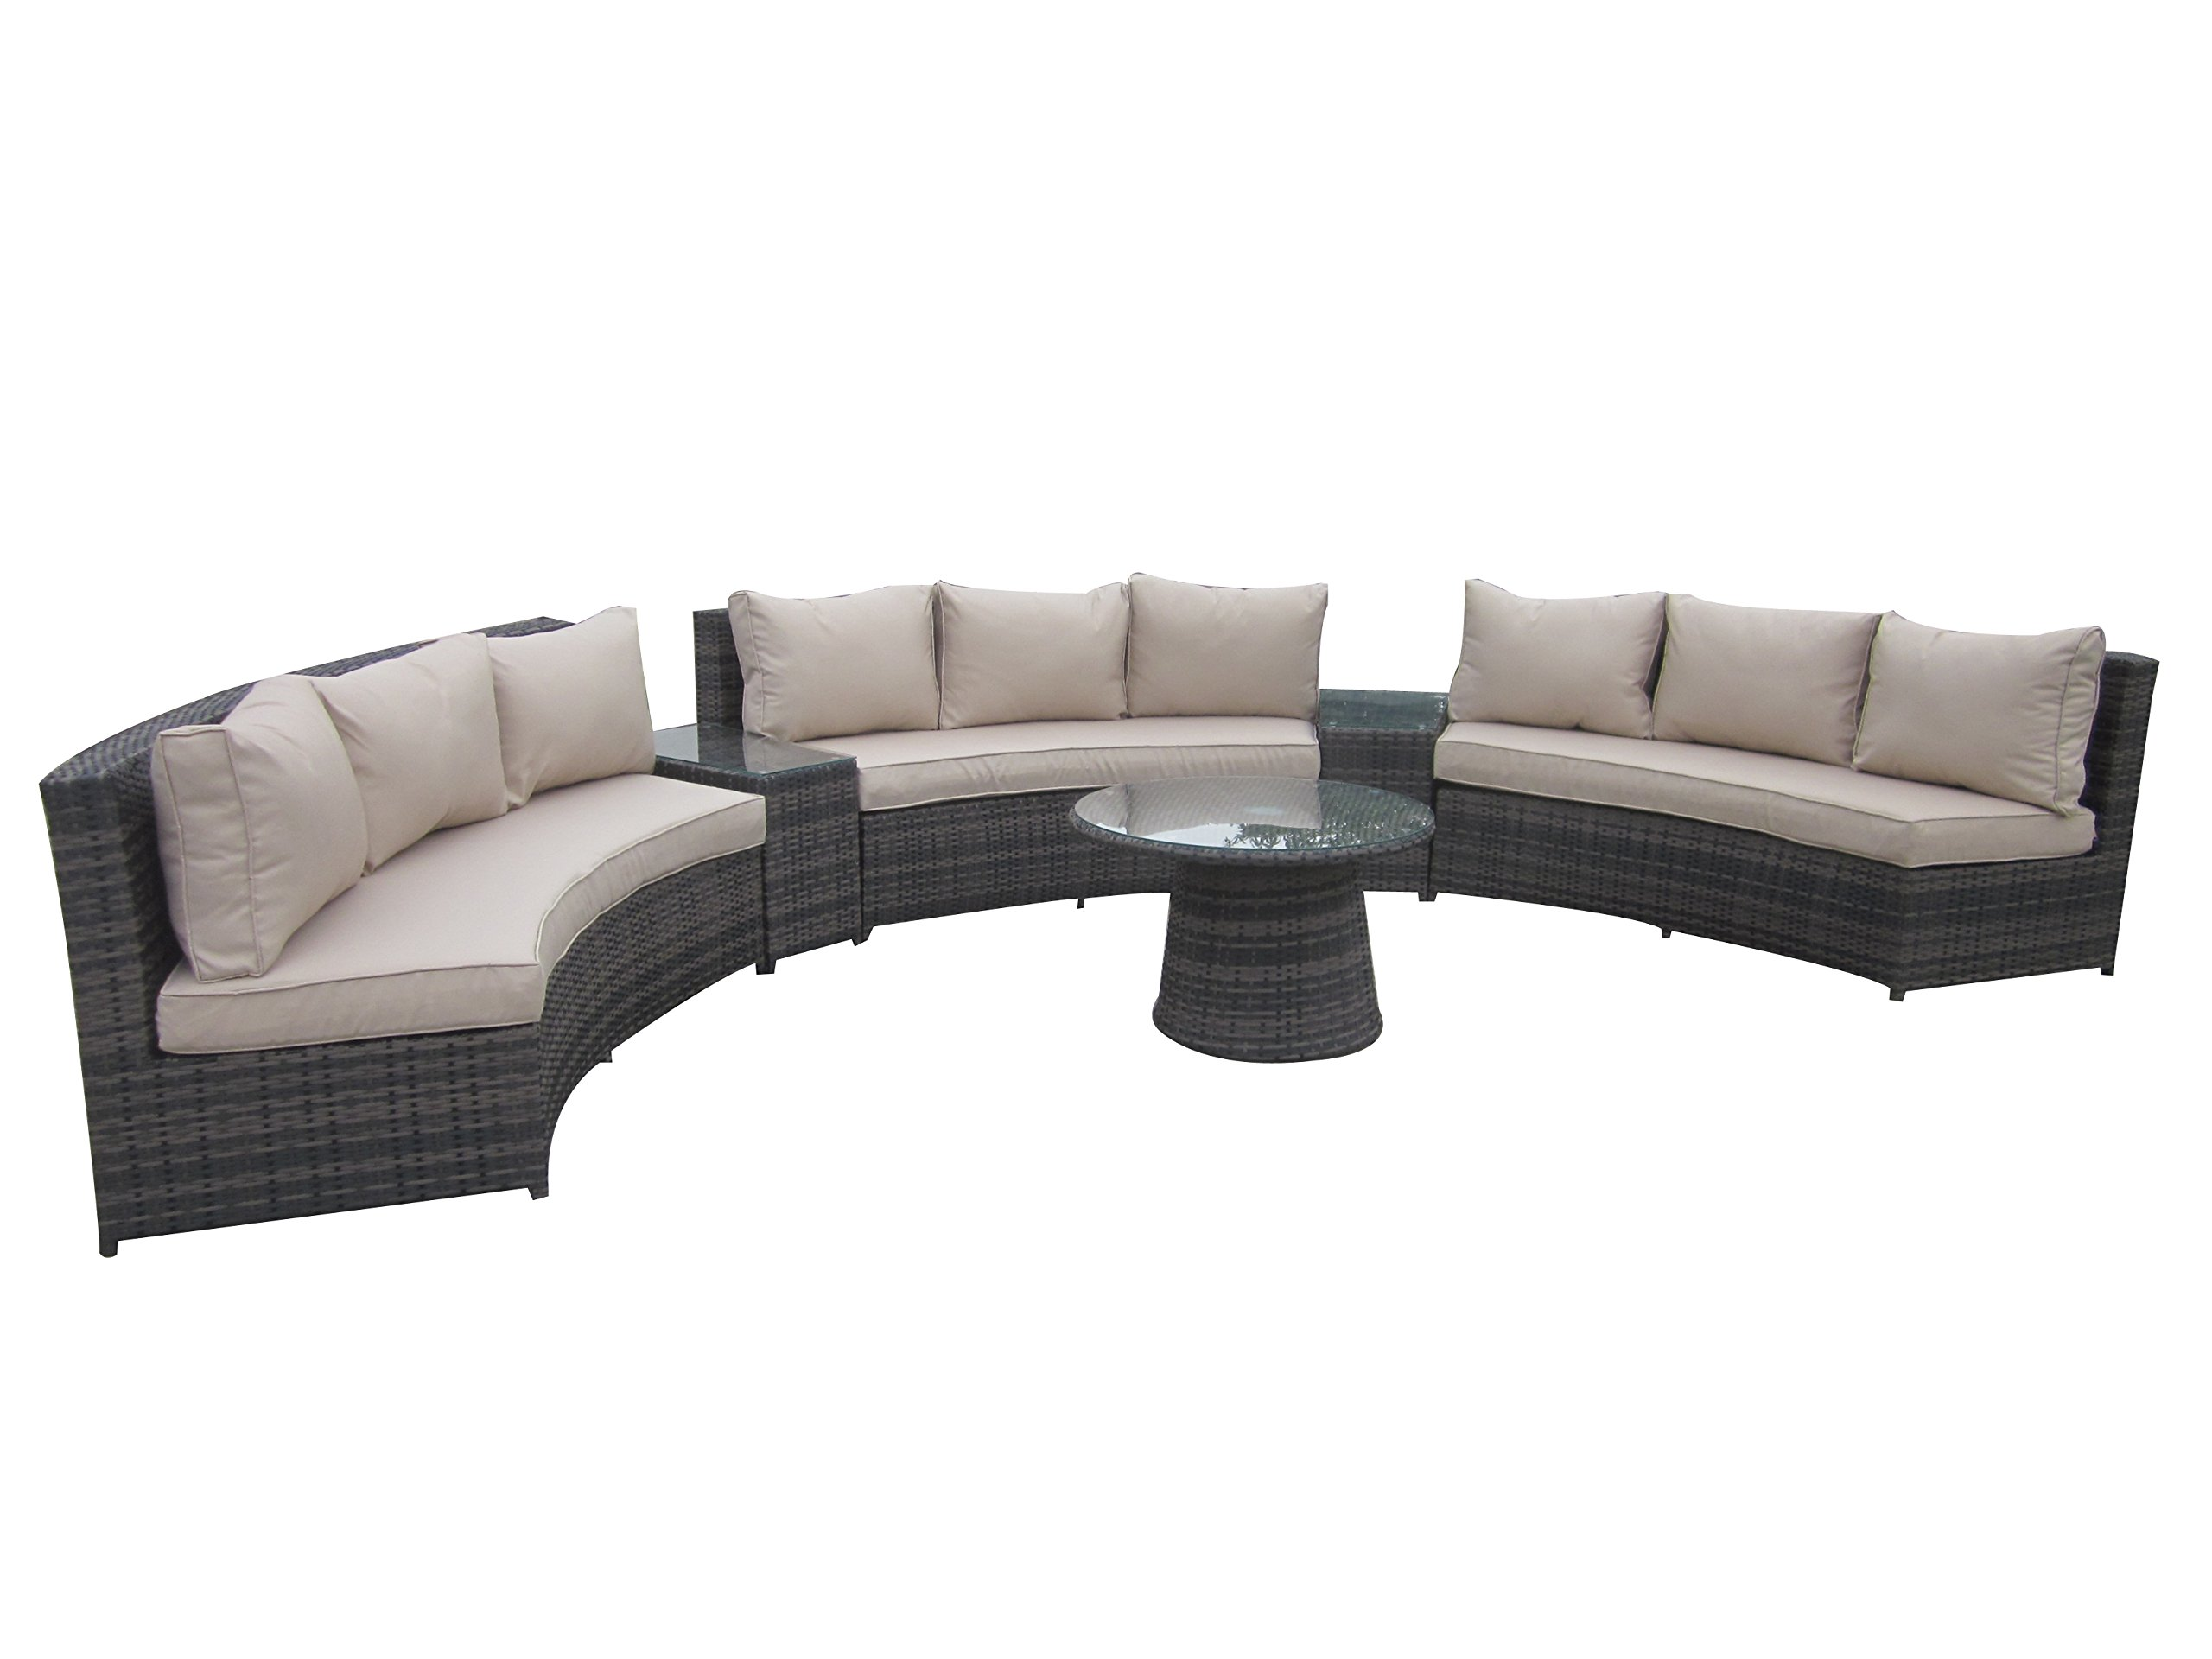 6 Piece Conversation Set,Half Moon Rattan Sofa Set - Taupe - Aluminum frame: resist warping, twisting, and rust; plus they're lightweight and easily portable Polyethylene rattan: designed to look like beautiful hand woven wicker, these frame exteriors also resist UV and moisture damage Polyester cushions: 10cm thick, foam-filled for comfort, resistant to fade and moisture - patio-furniture, patio, conversation-sets - 71hV47UL8vL -